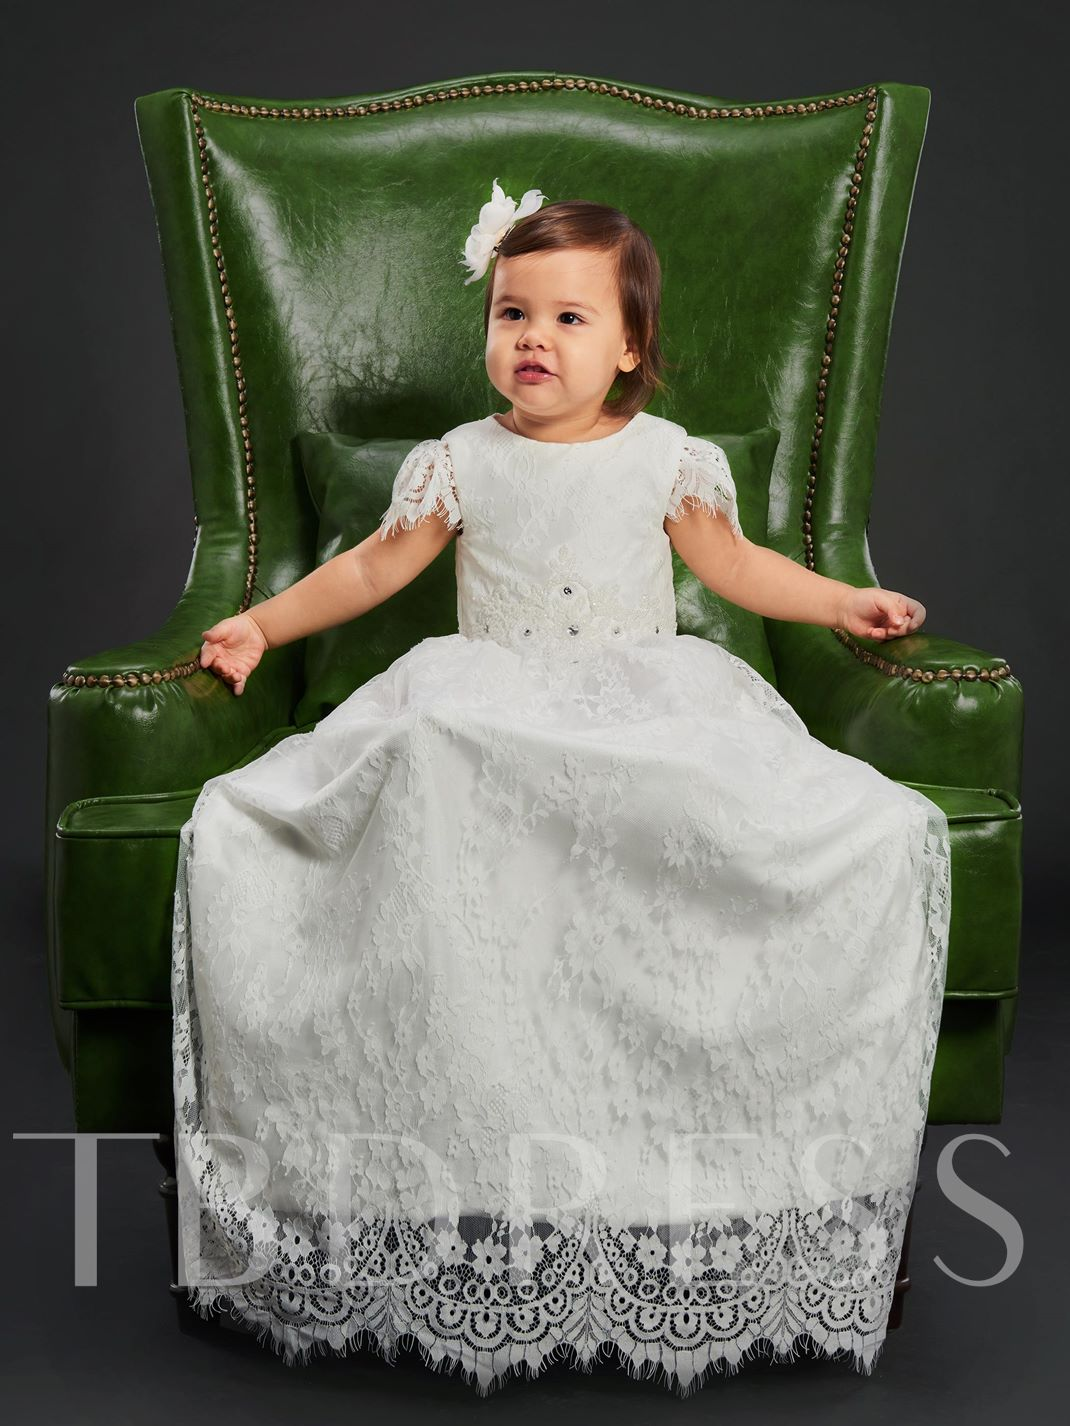 Baby Girls Lace Christening Baptism Gown - Tbdress.com